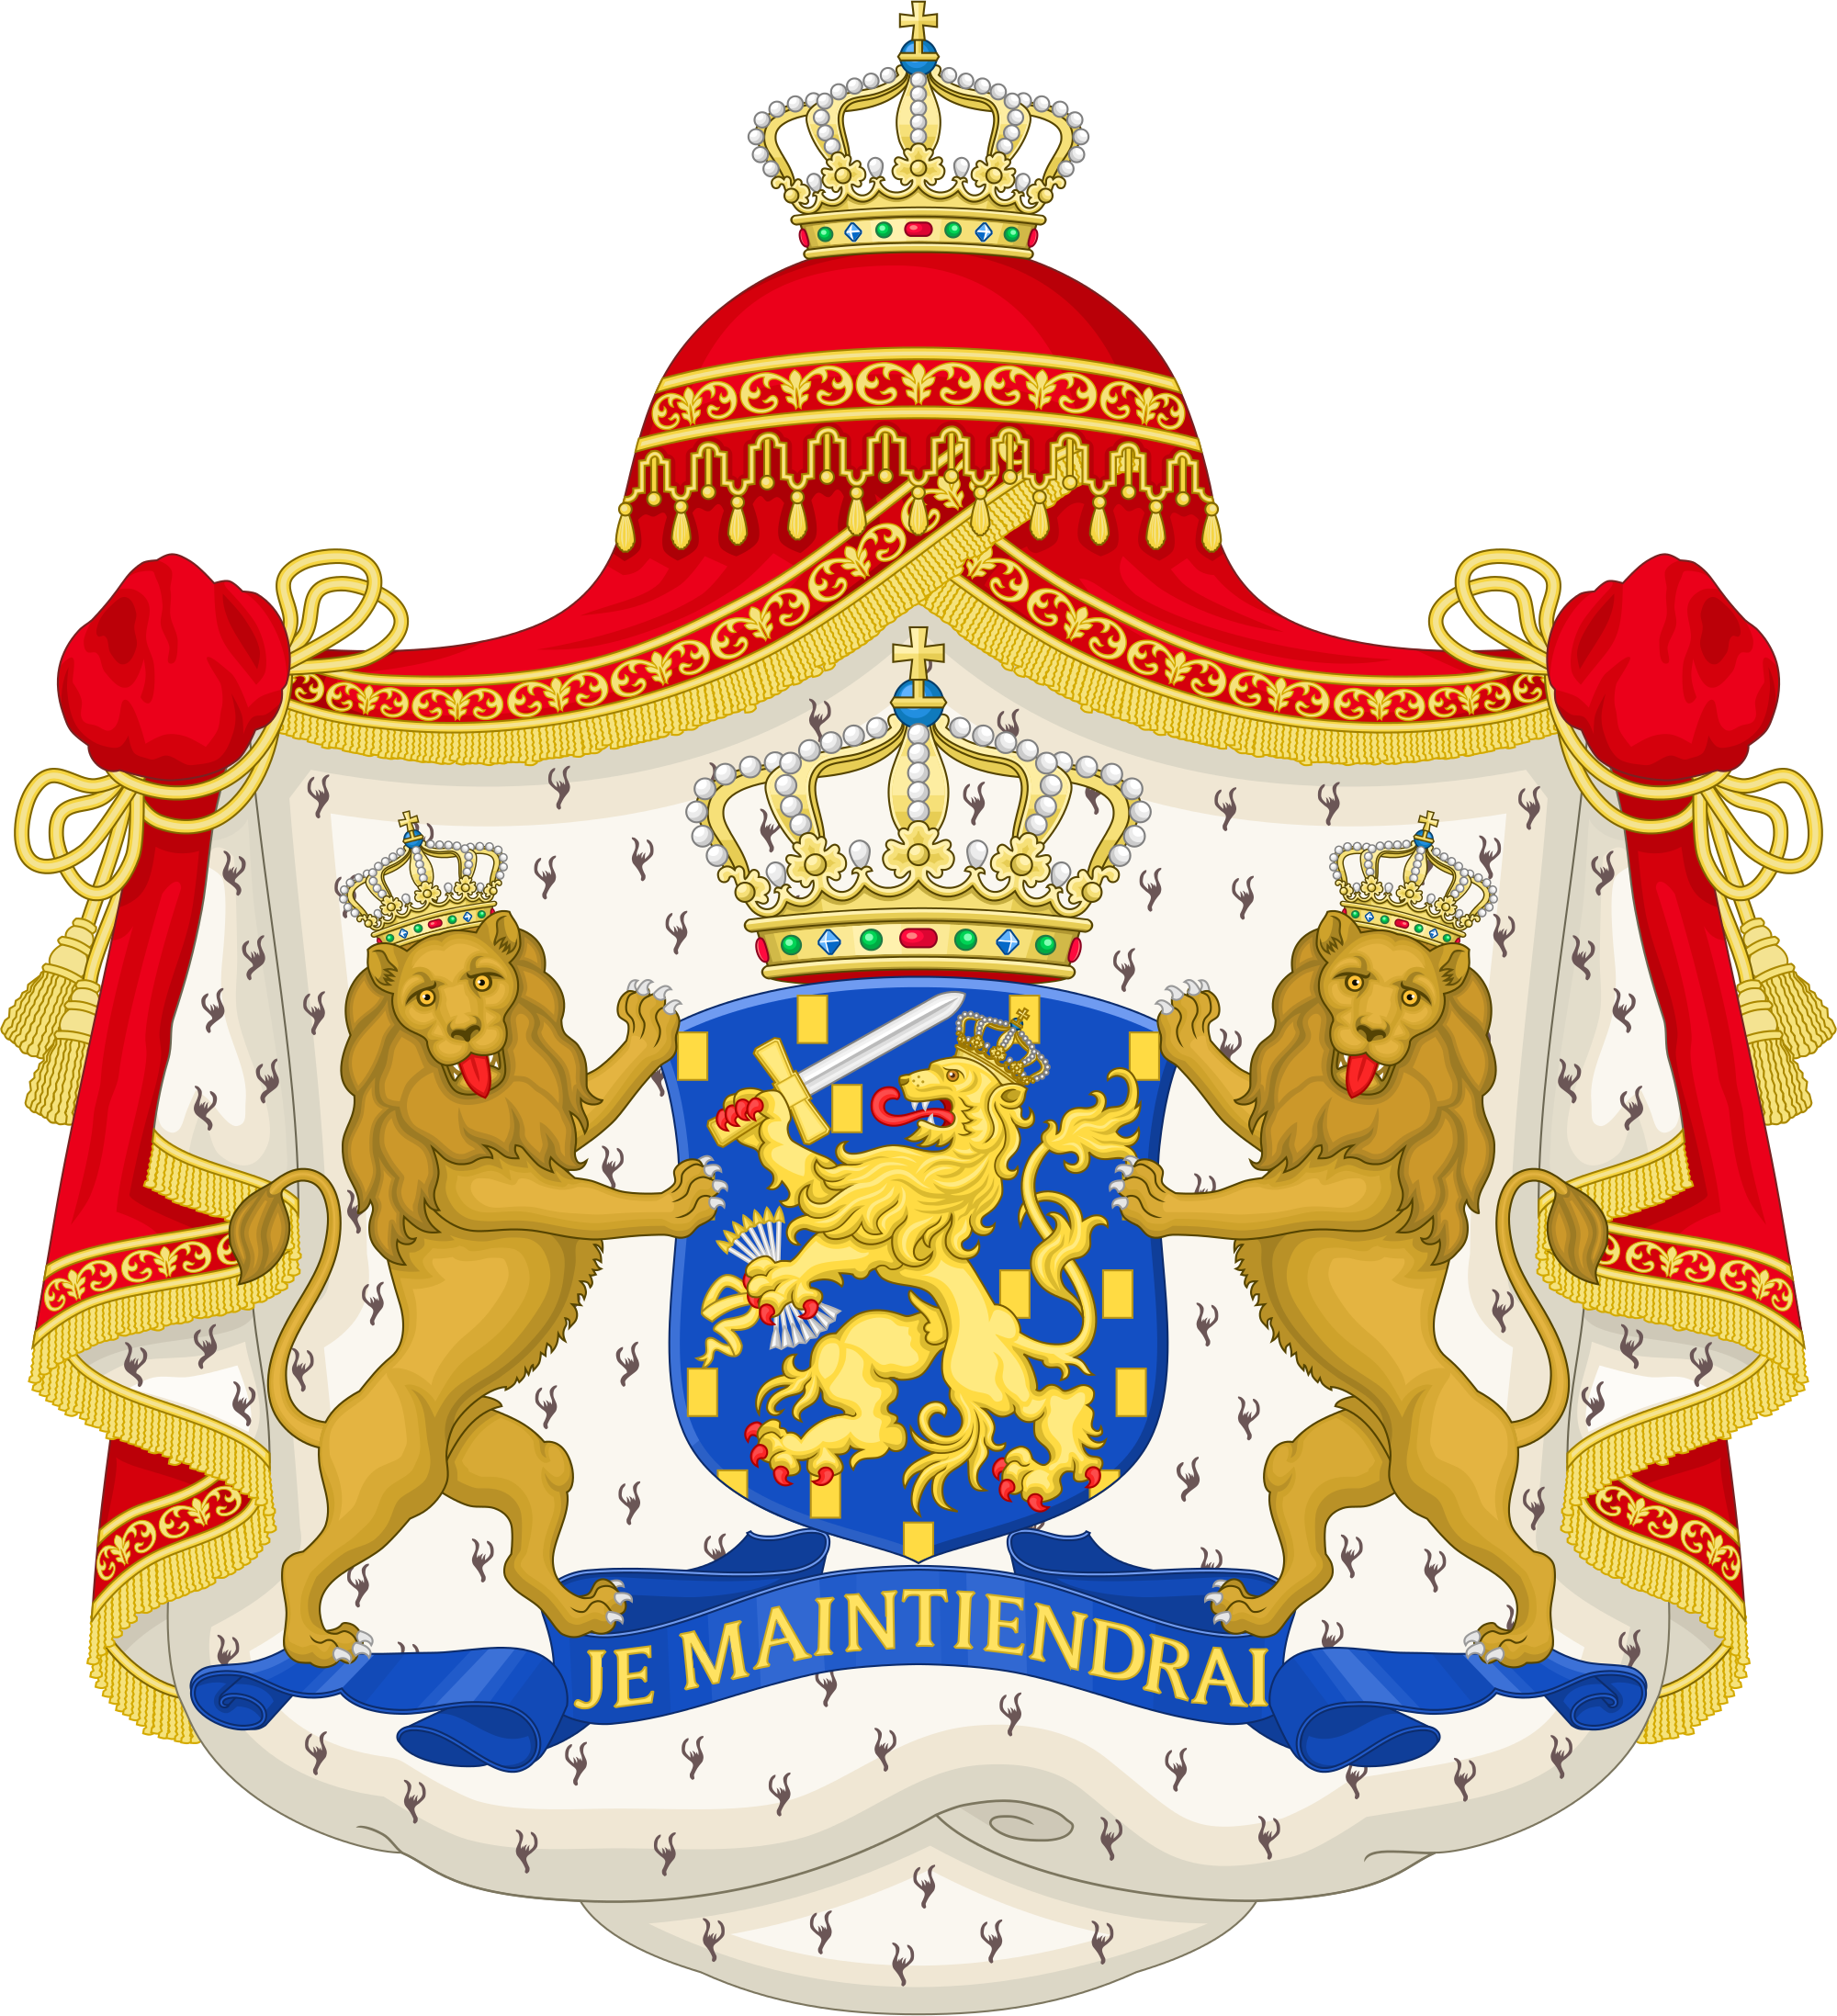 Coat of arms the. Gate clipart royal gate